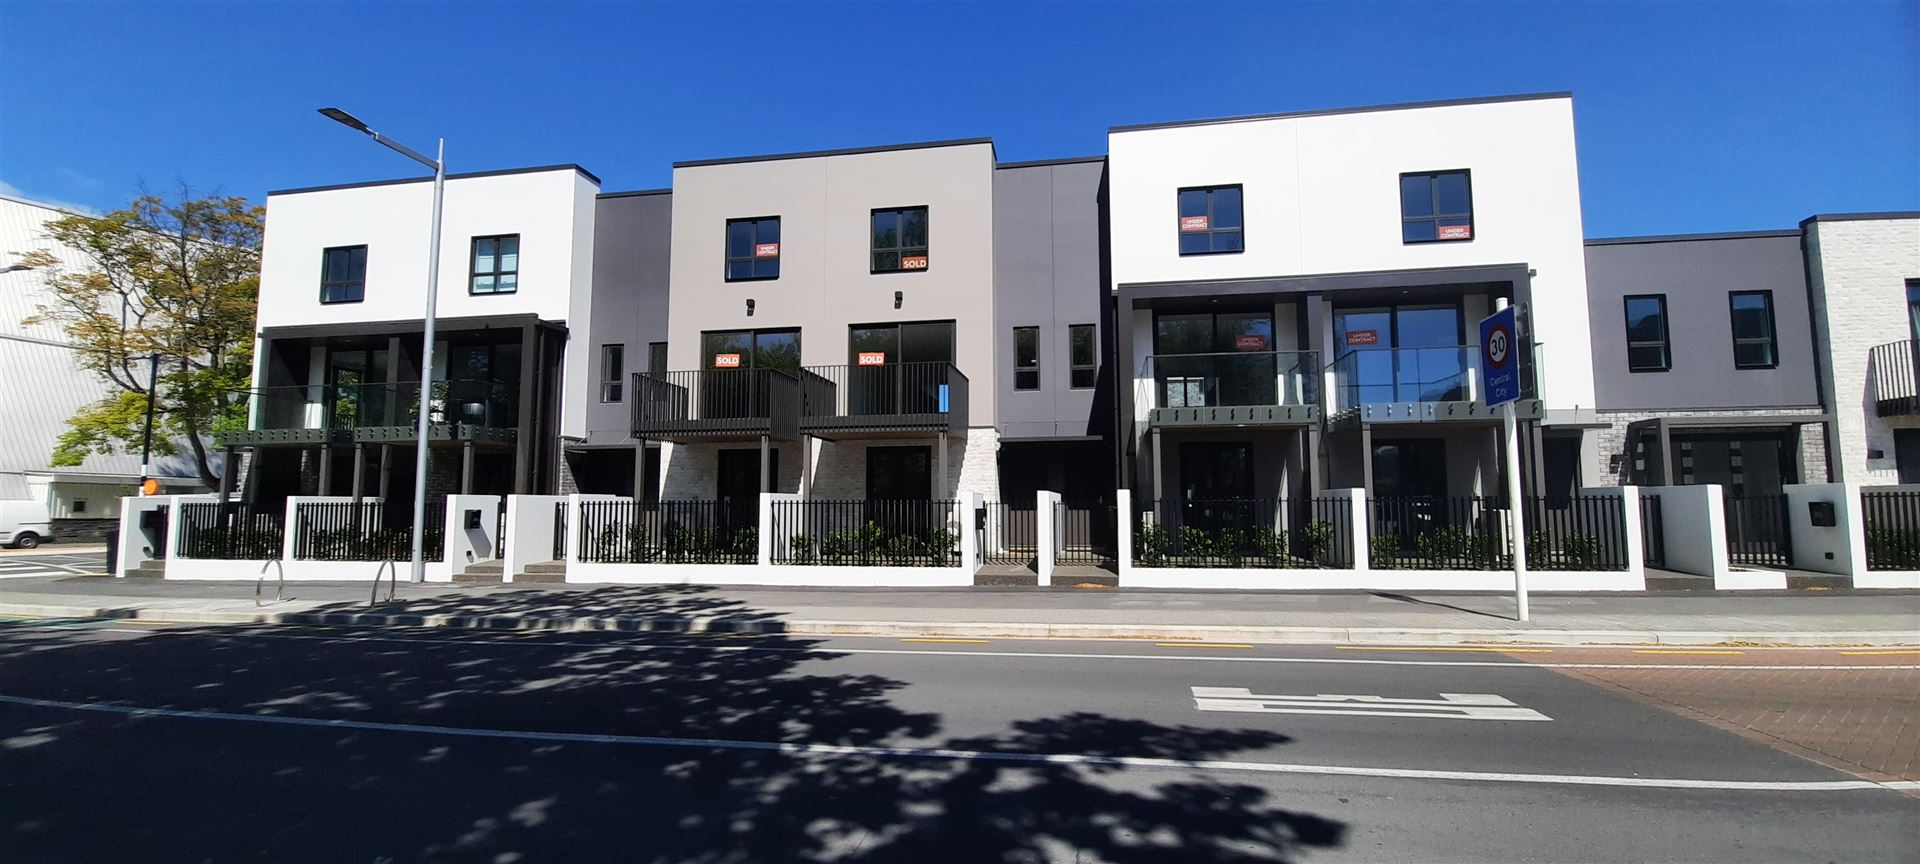 10/214 Hereford Street, Christchurch Central